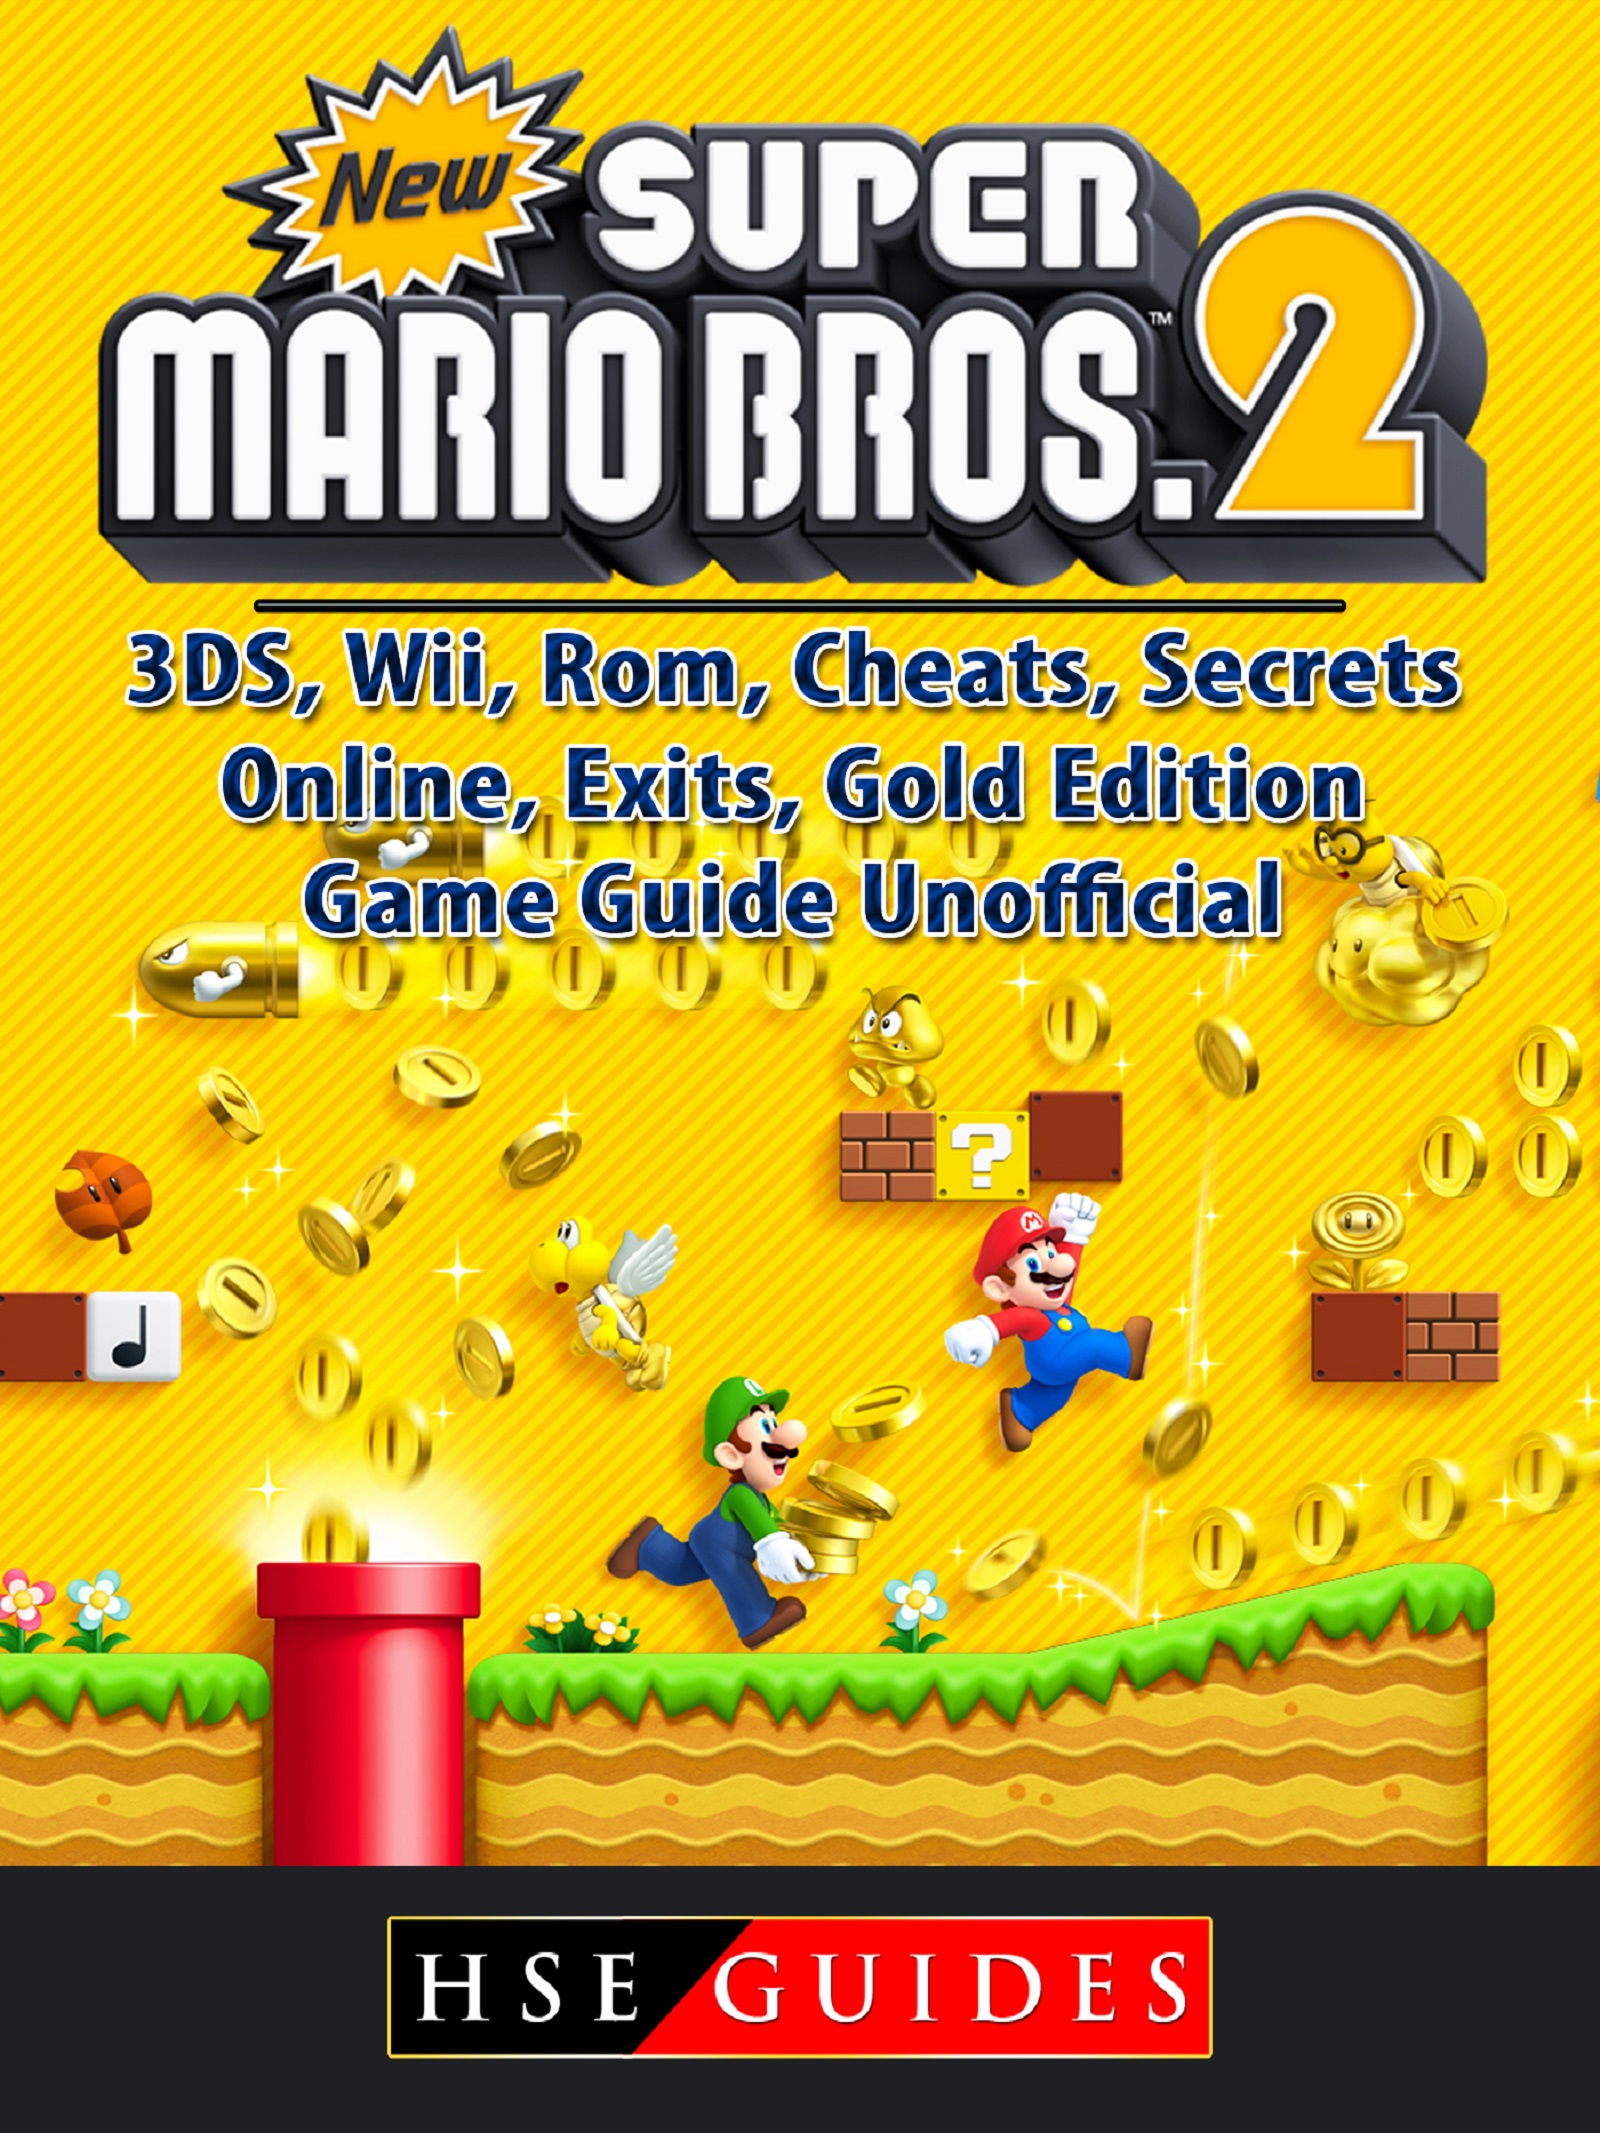 New Super Mario Bros 2, 3DS, Wii, Rom, Cheats, Secrets, Online, Exits, Gold Edition, Game Guide Unofficial By Hse Guides